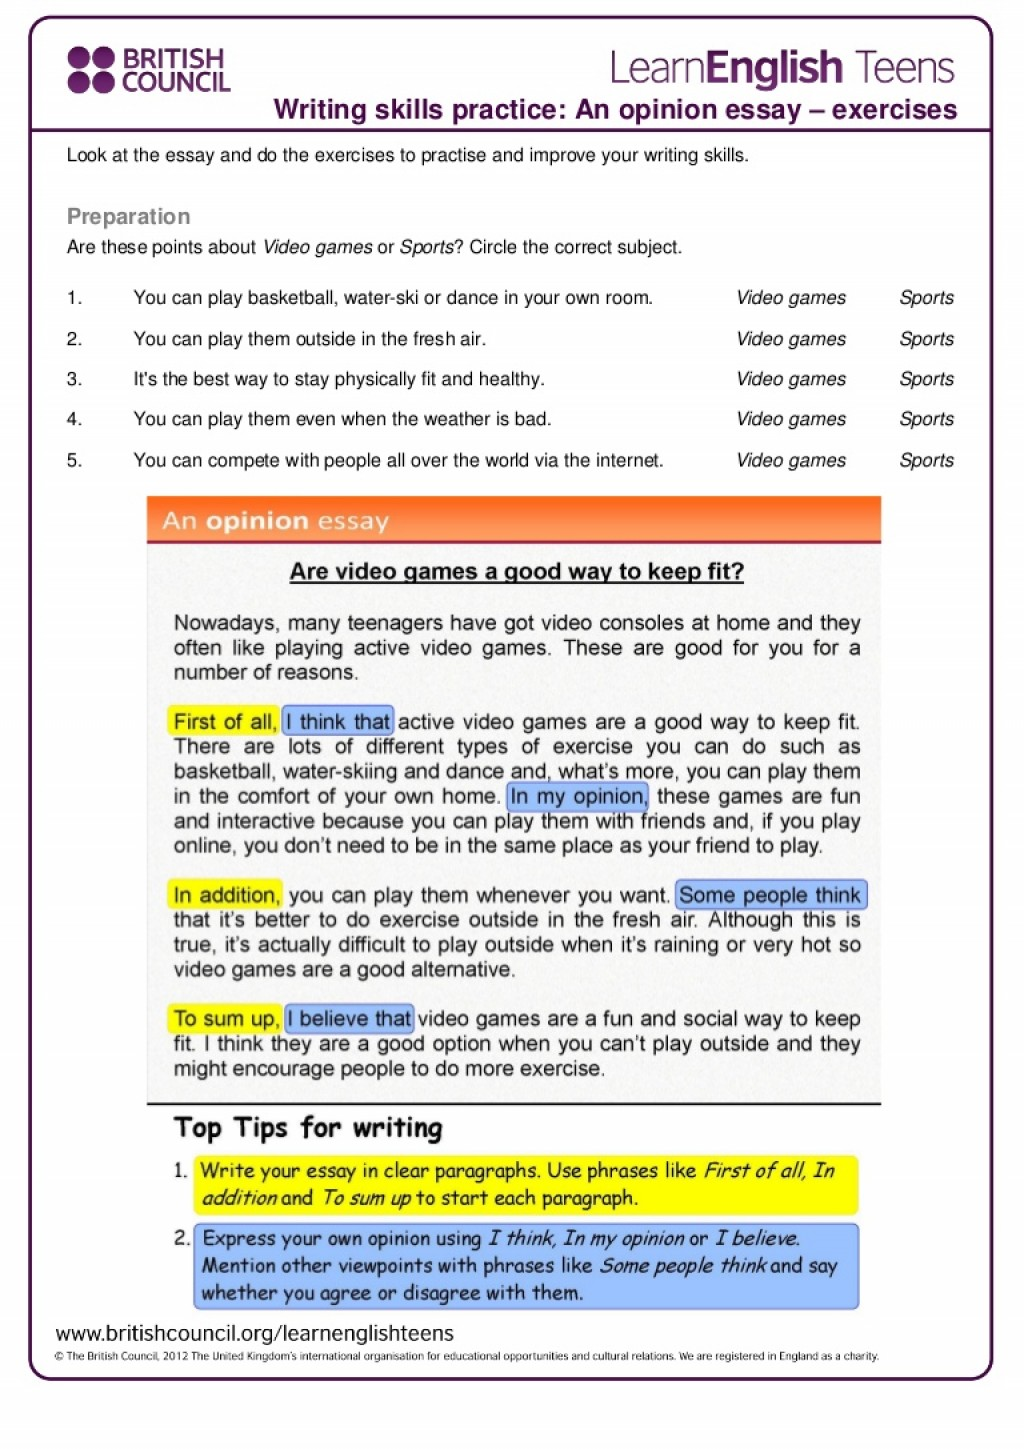 011 Writing Skills Essay Online Ielts Courses Podcast Jc Economics How To Write An Opinion 4th Grade Anopinionessay Exercises Thumbn Magnificent Prompts 6th Examples 3rd Large